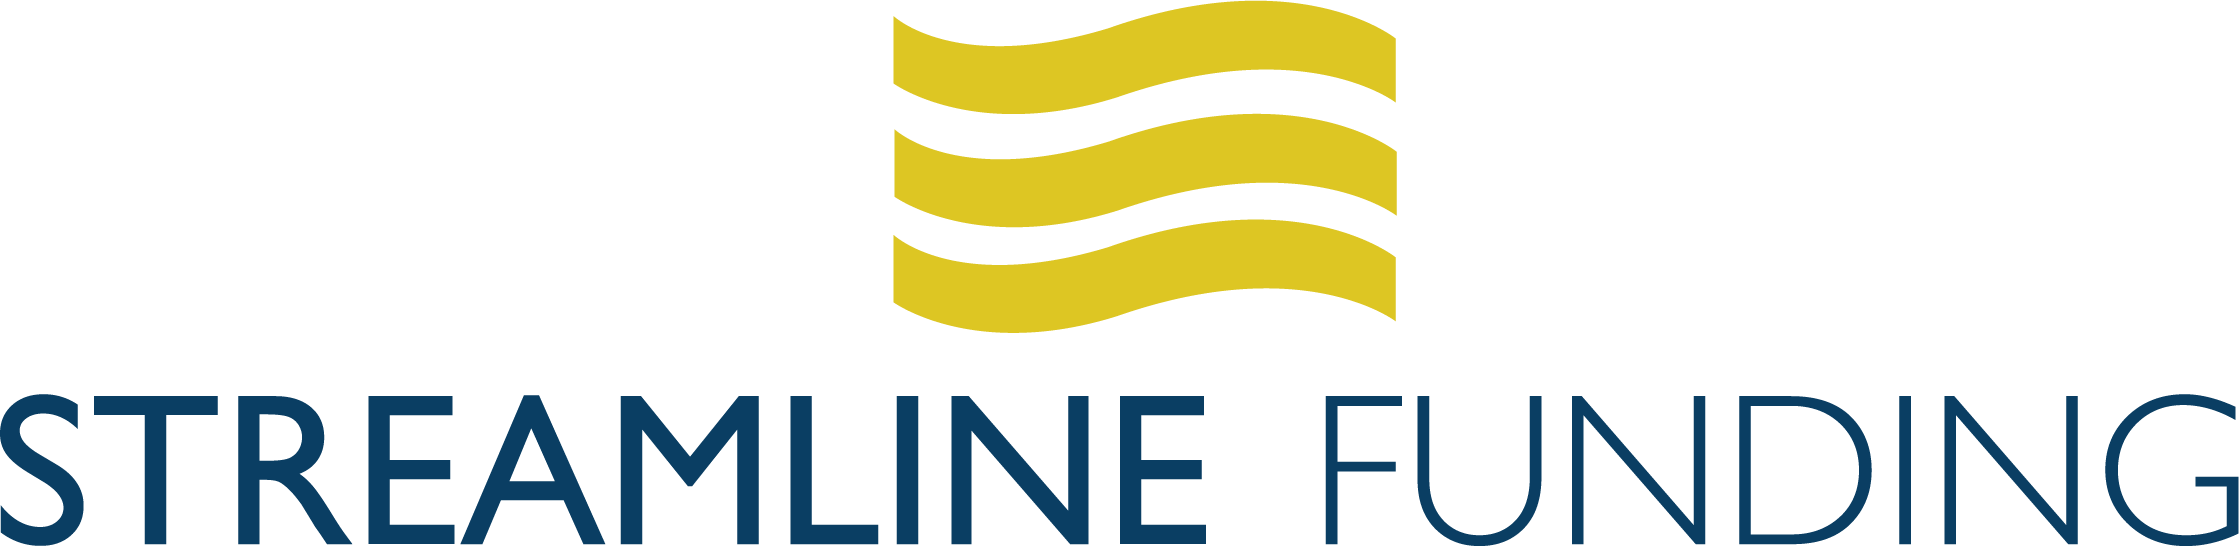 Streamline Funding Color Logo